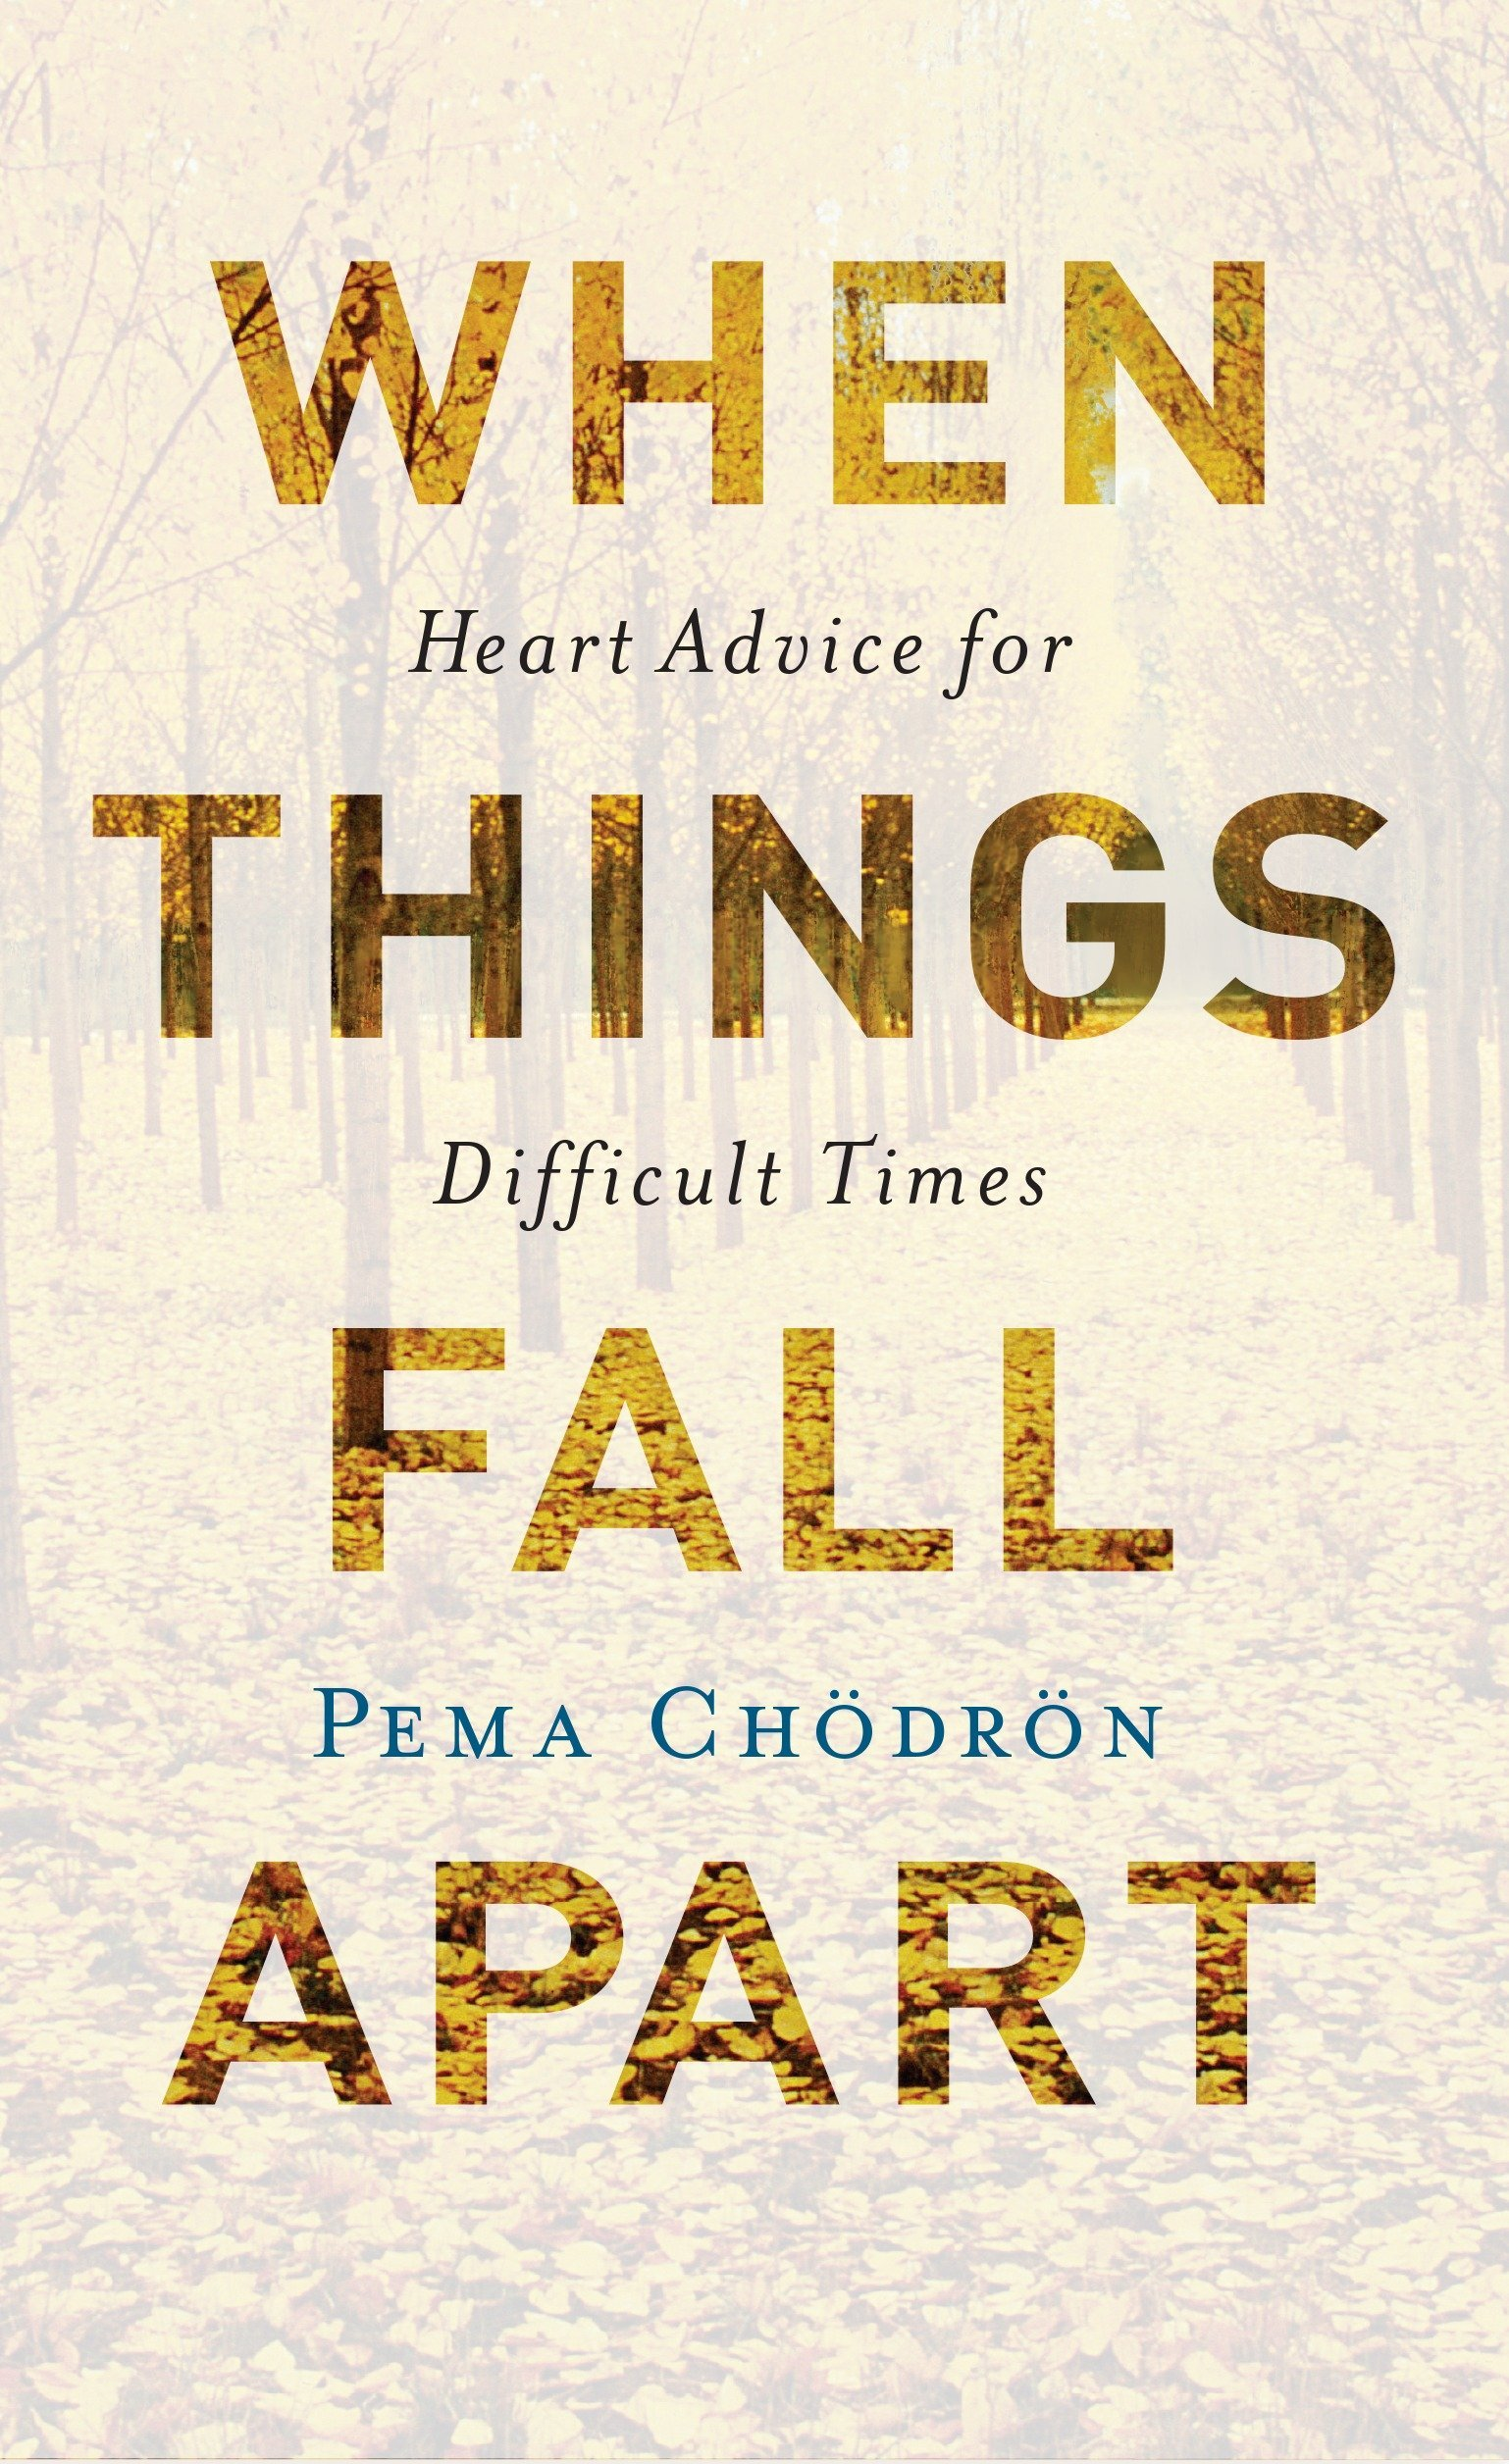 All Things Fall Apart Book